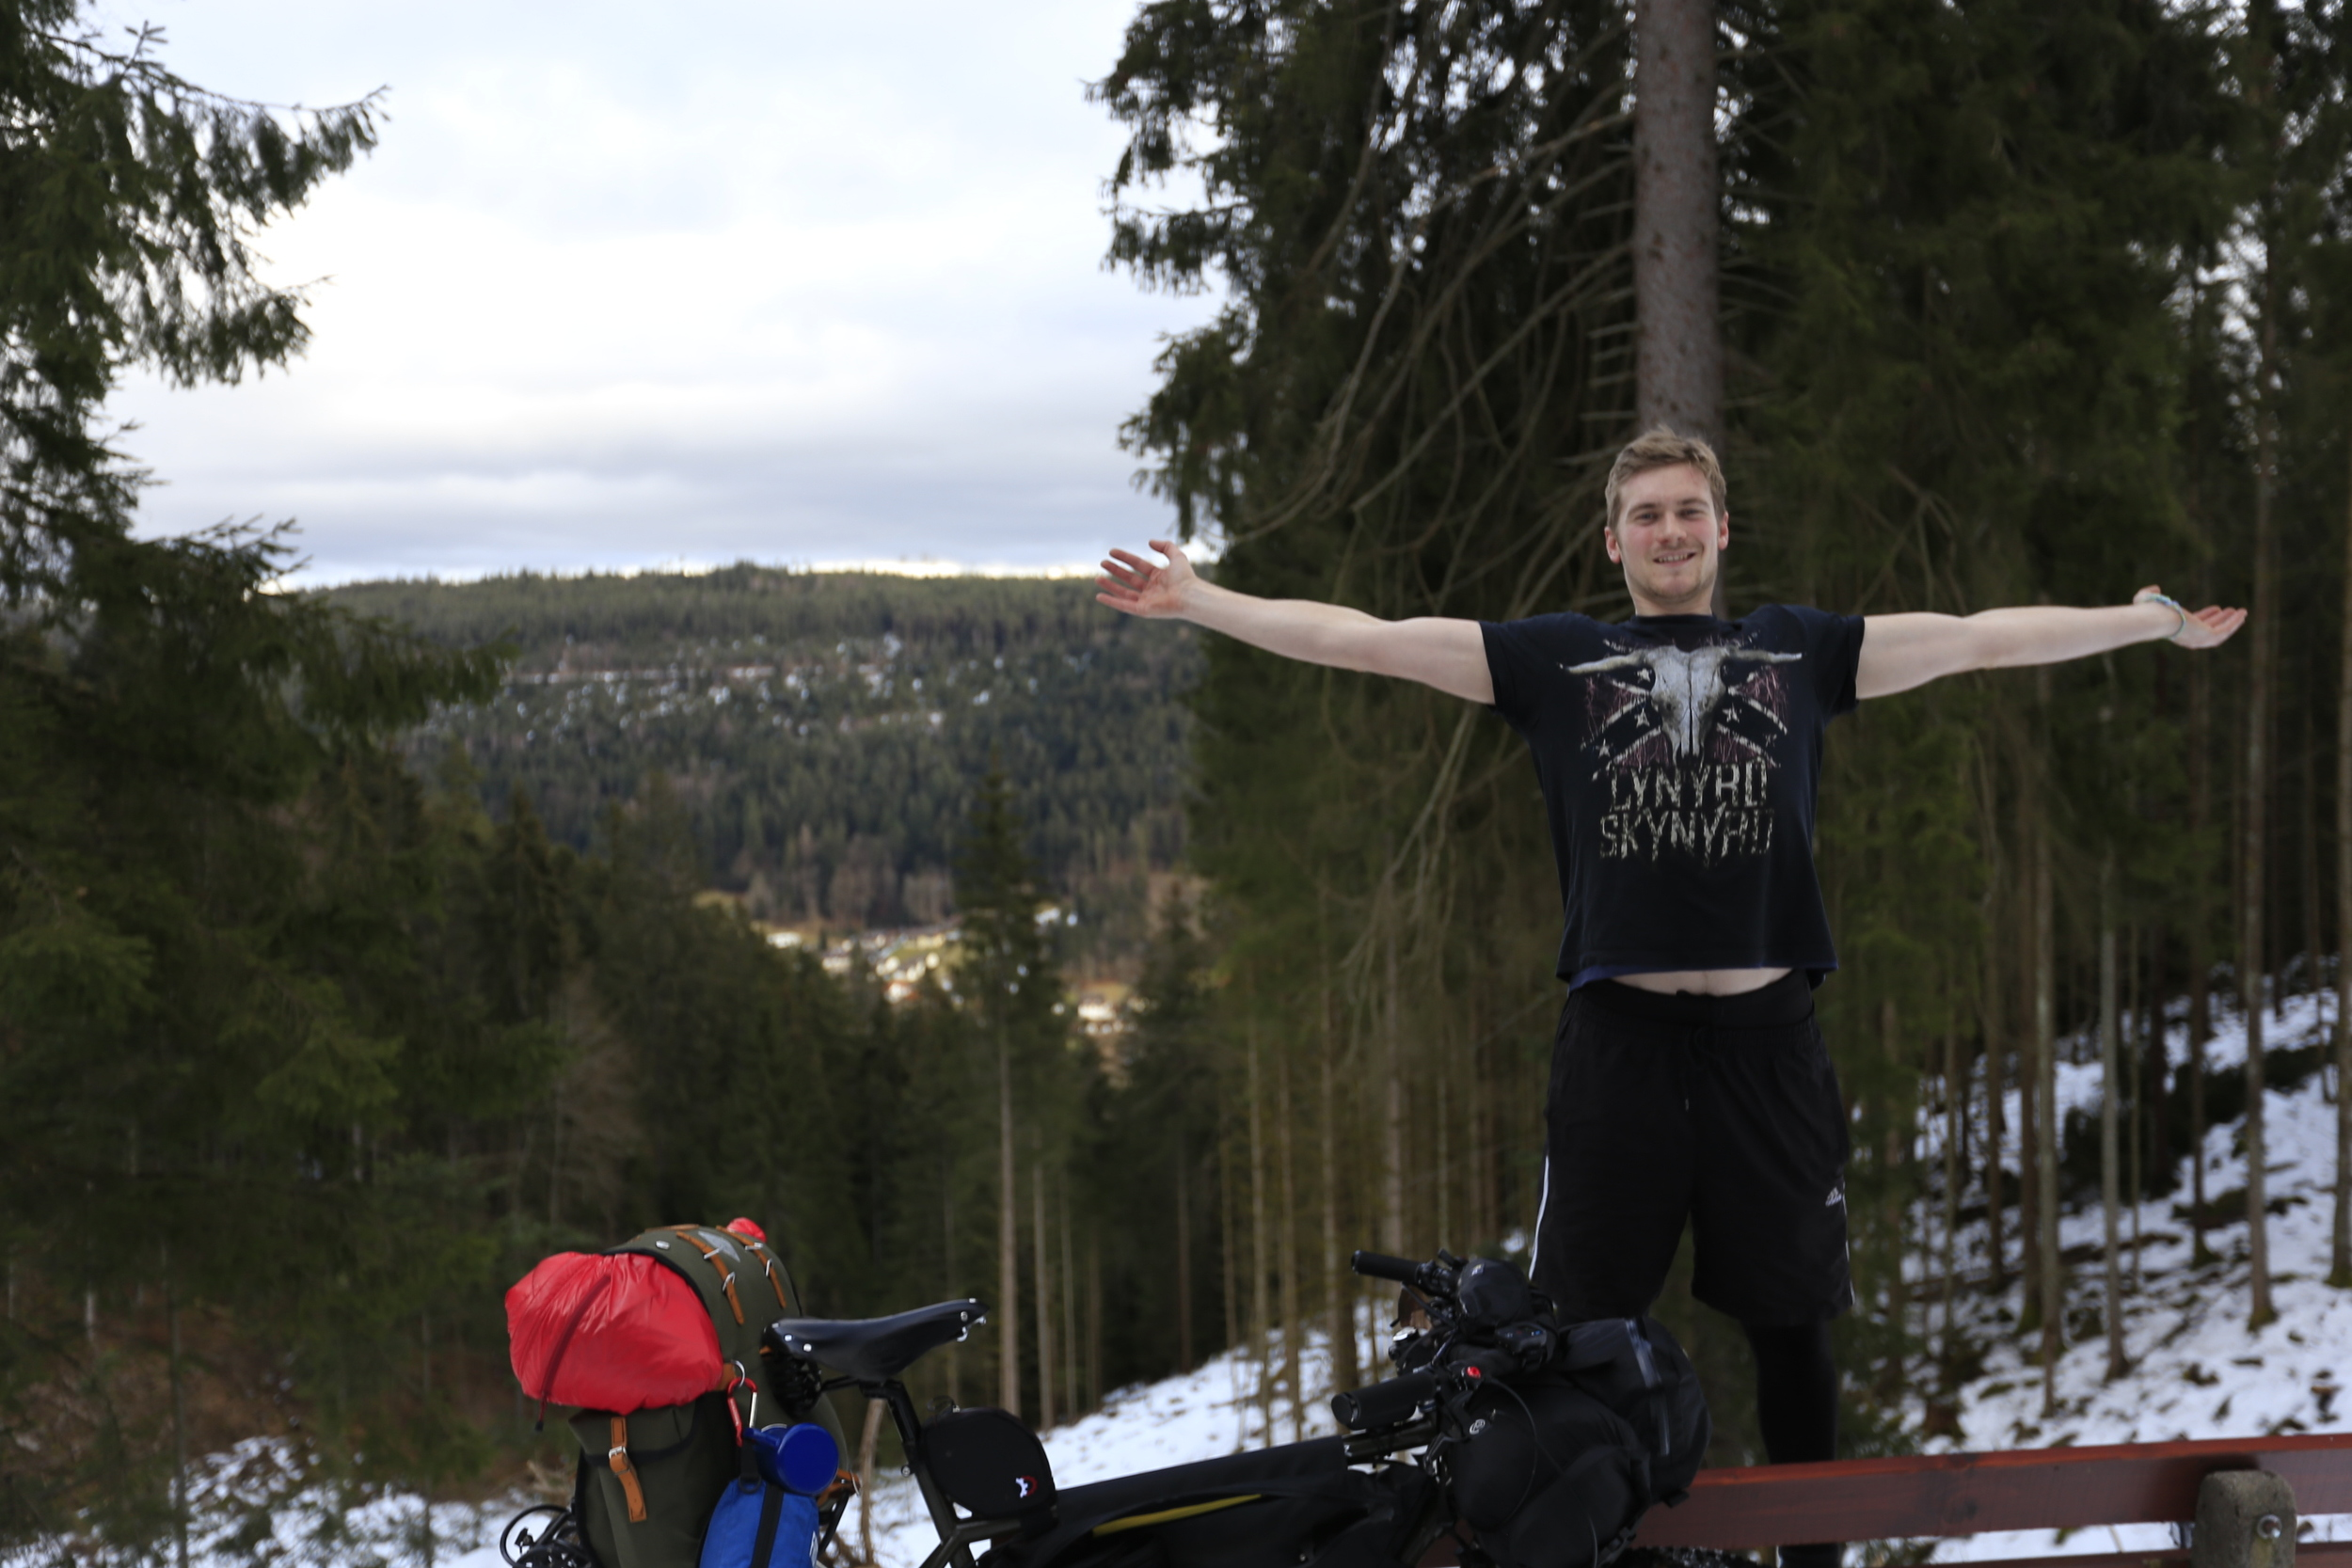 bikepacking, bicycle touring, cycling, travel, bicycle touring apocalypse, photo, photography blog, cycle, surly, surly ecr, Jack Macgowan, black forest, black forest germany, cycle, cycling